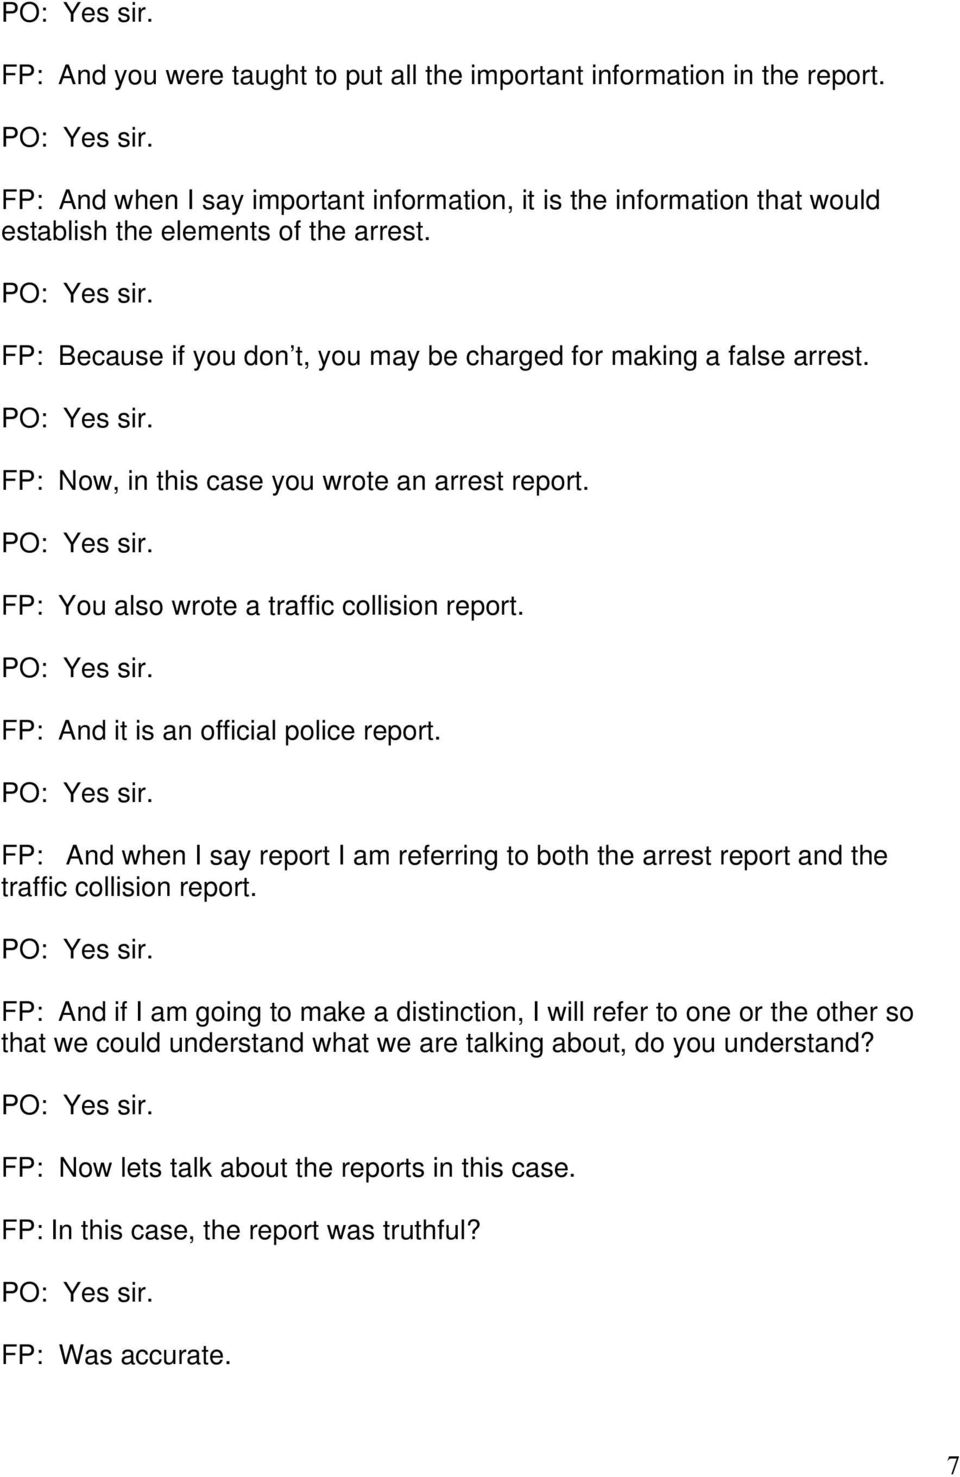 PO: Yes sir. FP: Now, in this case you wrote an arrest report. PO: Yes sir. FP: You also wrote a traffic collision report. PO: Yes sir. FP: And it is an official police report. PO: Yes sir. FP: And when I say report I am referring to both the arrest report and the traffic collision report.